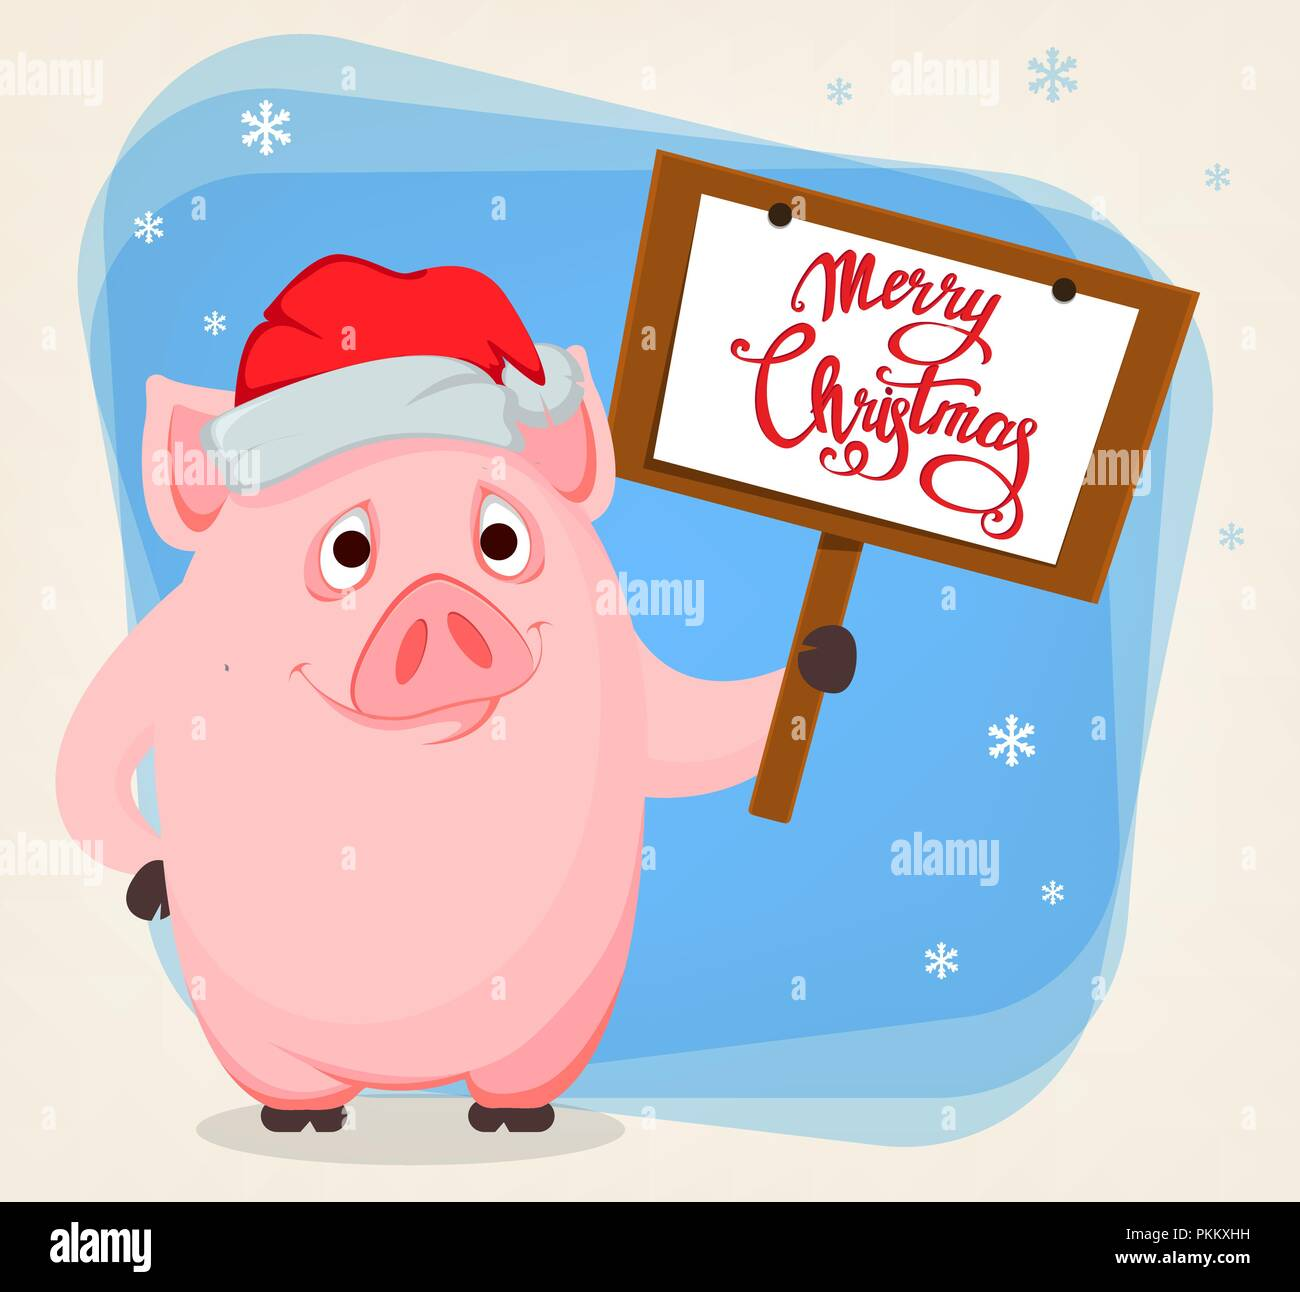 Merry Christmas Greeting Card With Cute Cartoon Pig, The